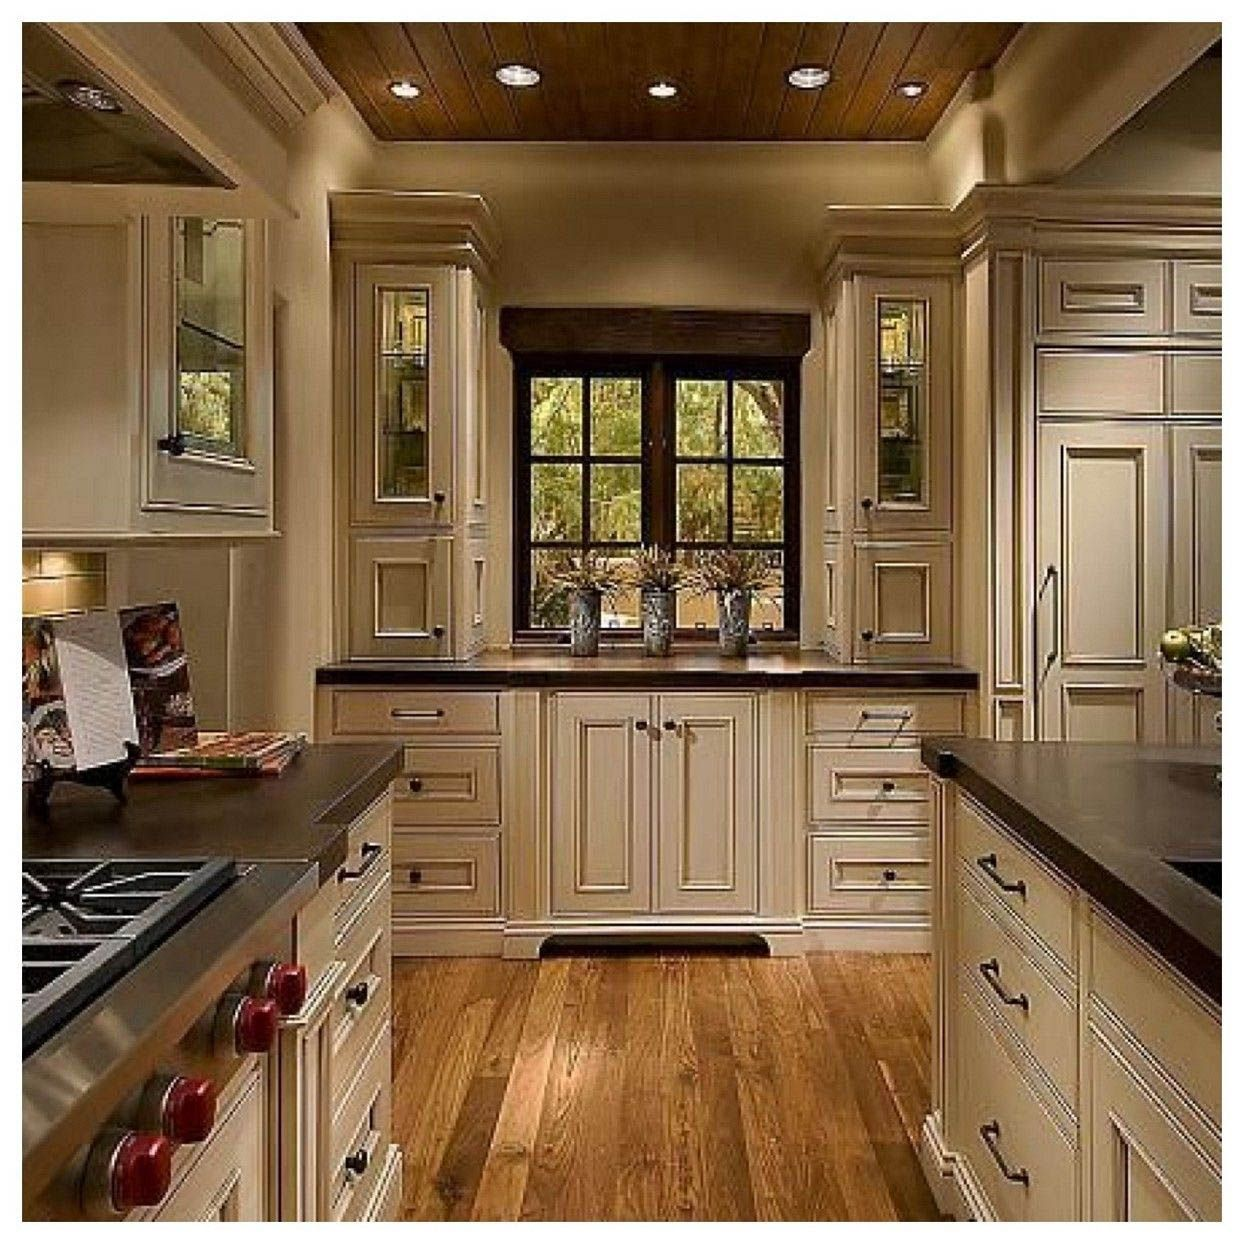 Rustic Kitchen Cabinets Kitchen Cabinet Design Antique White Kitchen Kitchen Cabinet Layout